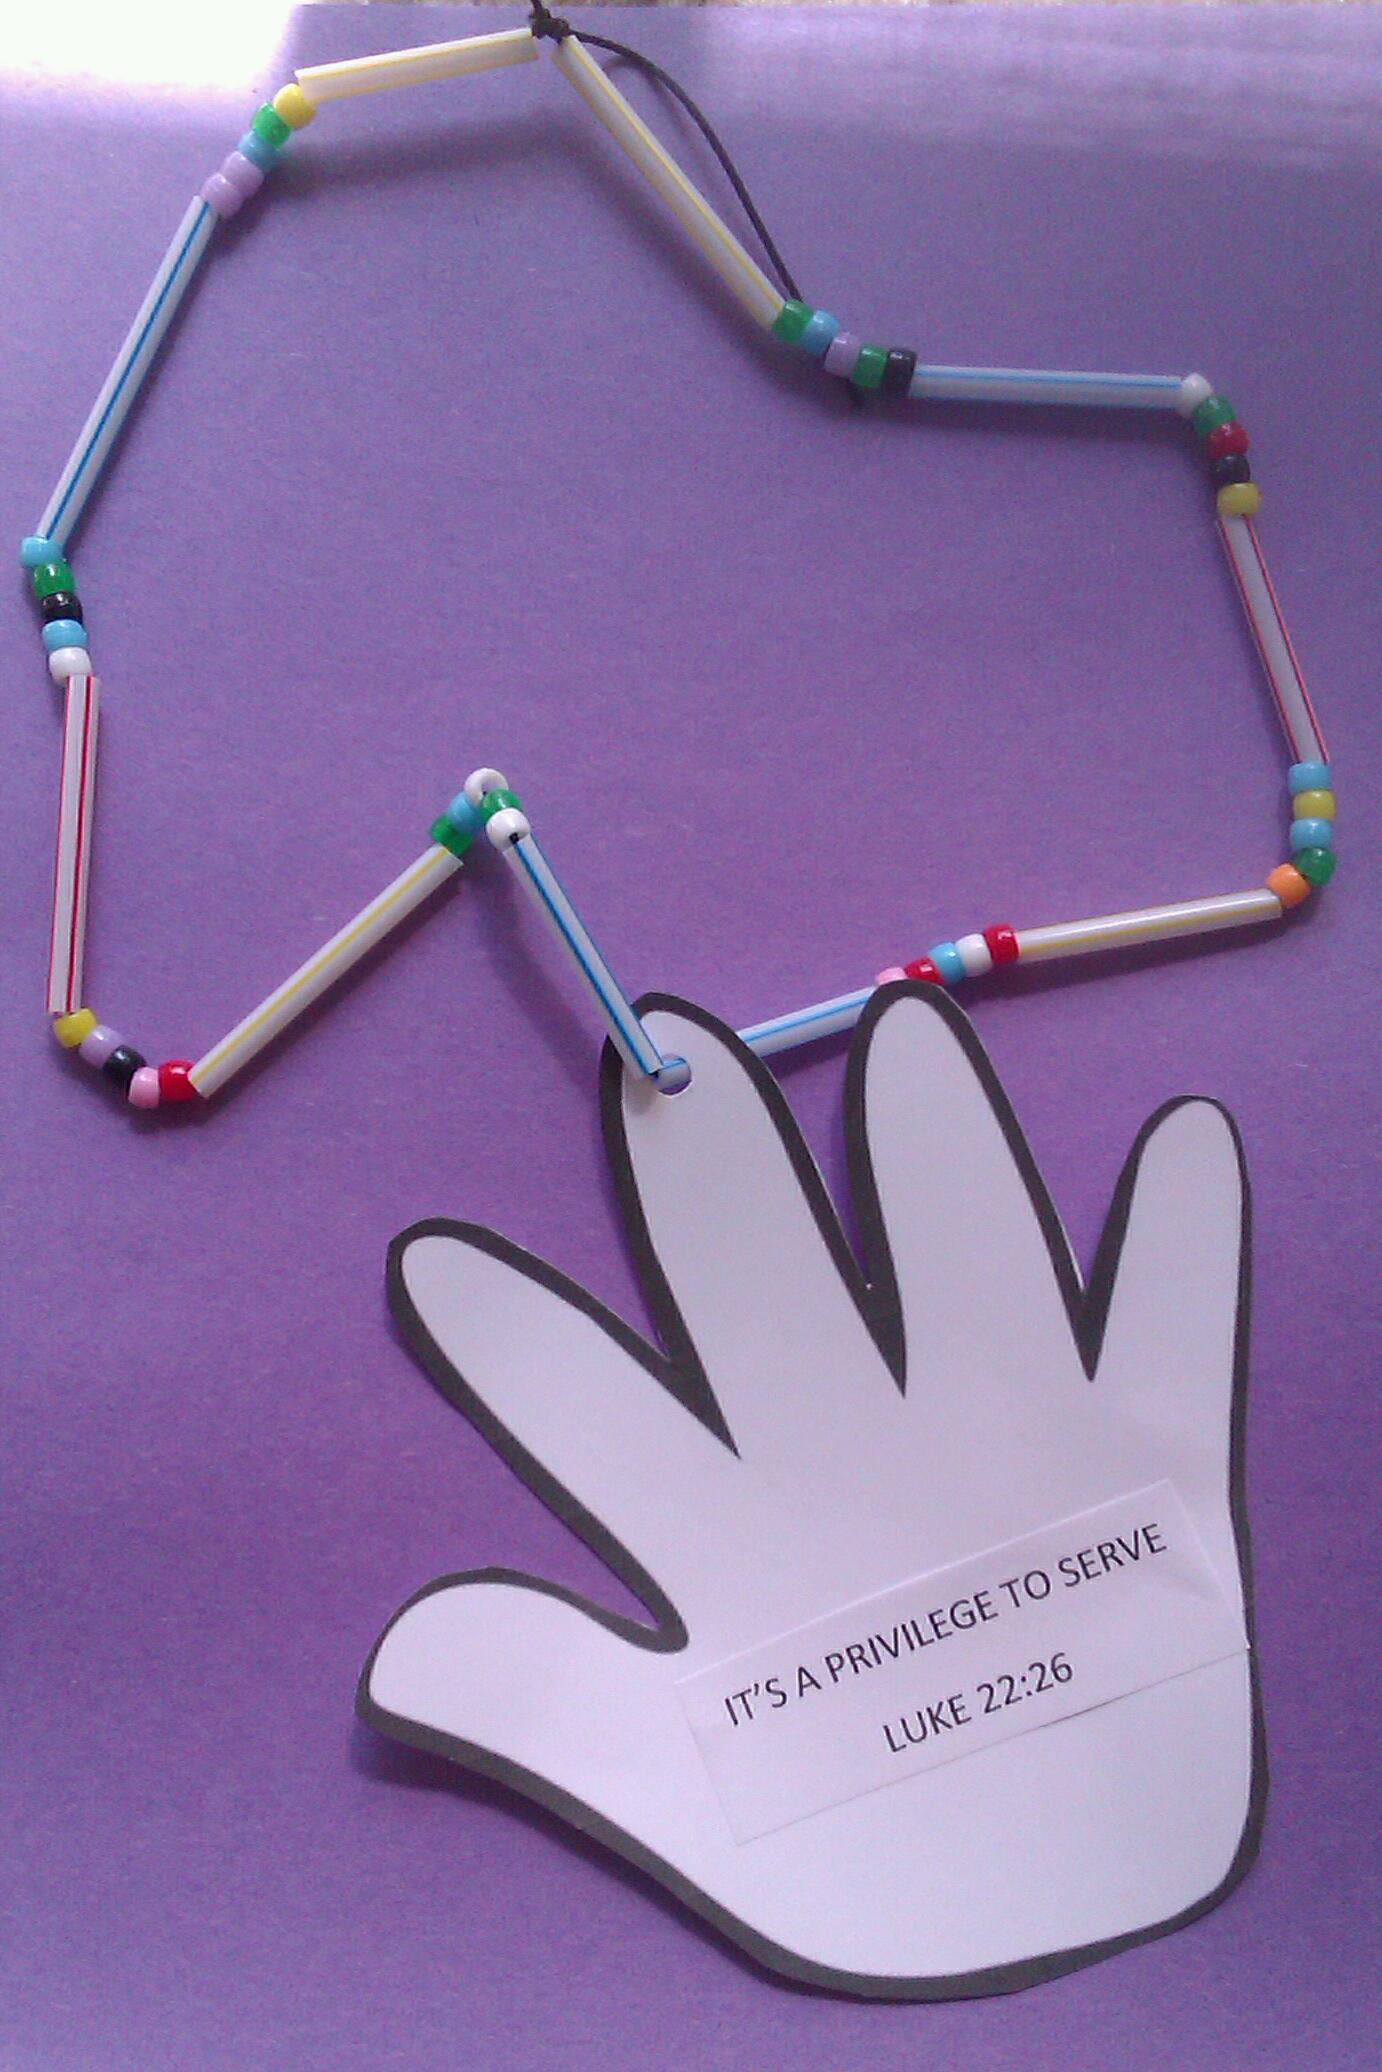 Sunday school crafts for preschool - Imag0021 1